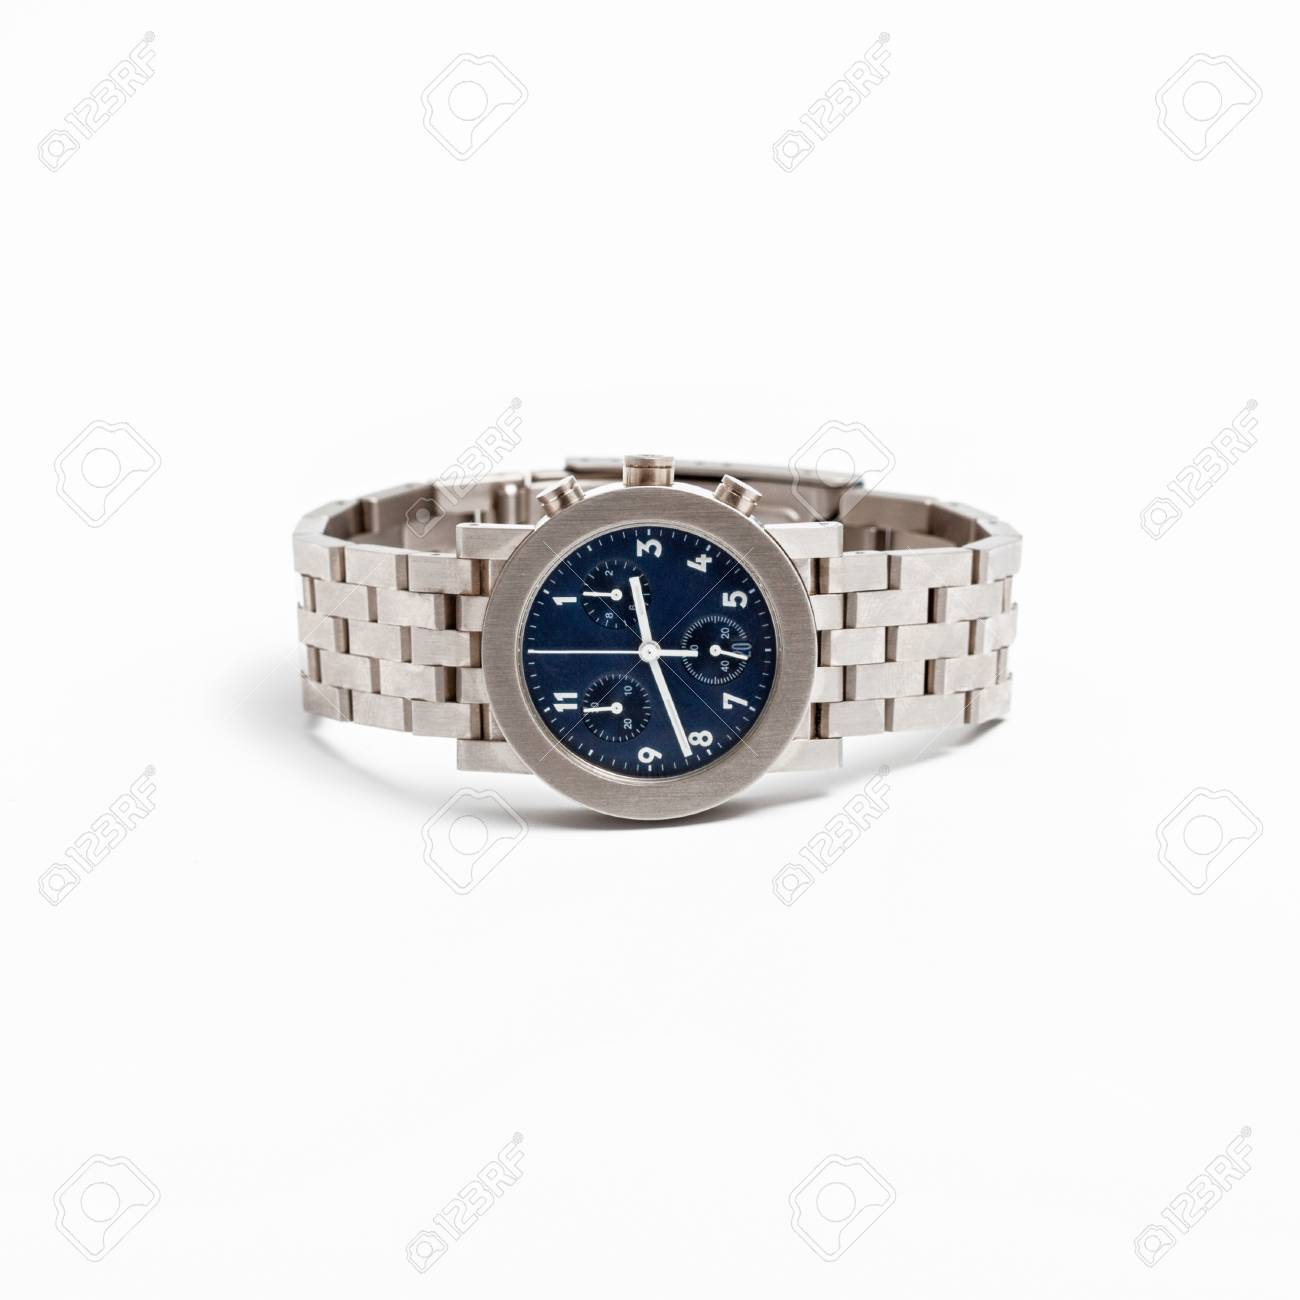 Swiss Watches On White Background Product Photography Stock Photo Picture And Royalty Free Image Image 46512584